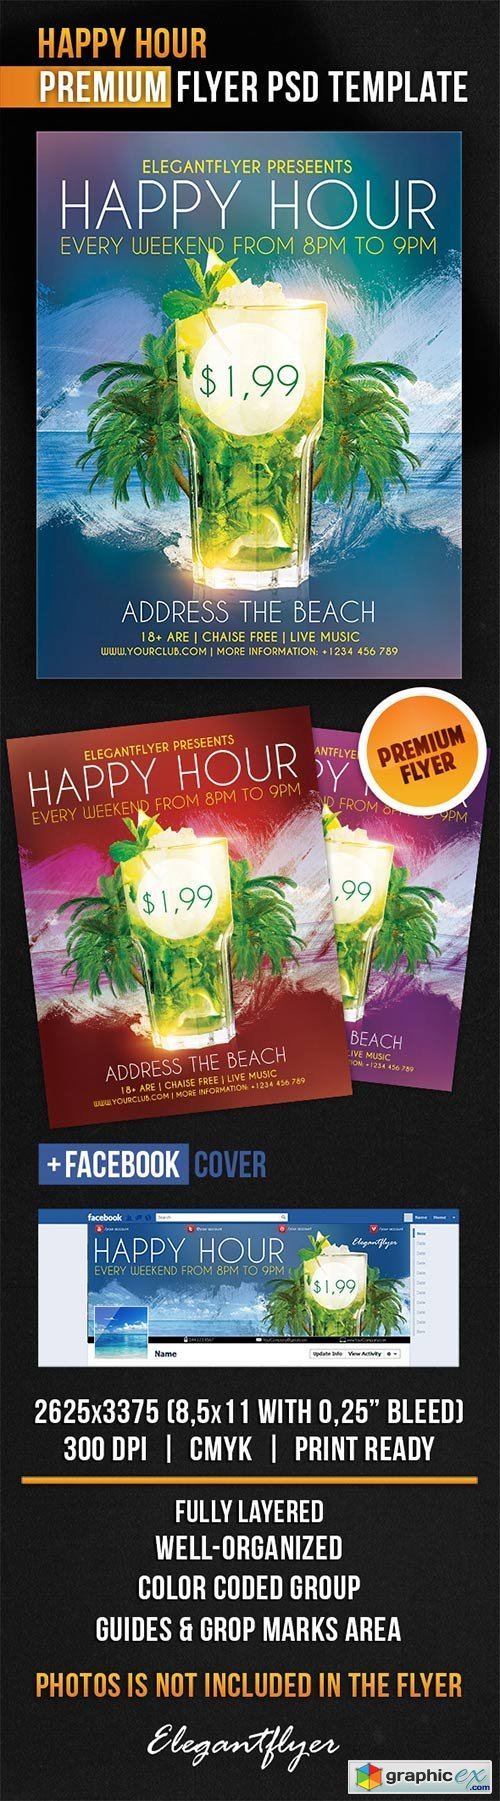 Happy Hour Flyer PSD Template + Facebook Cover